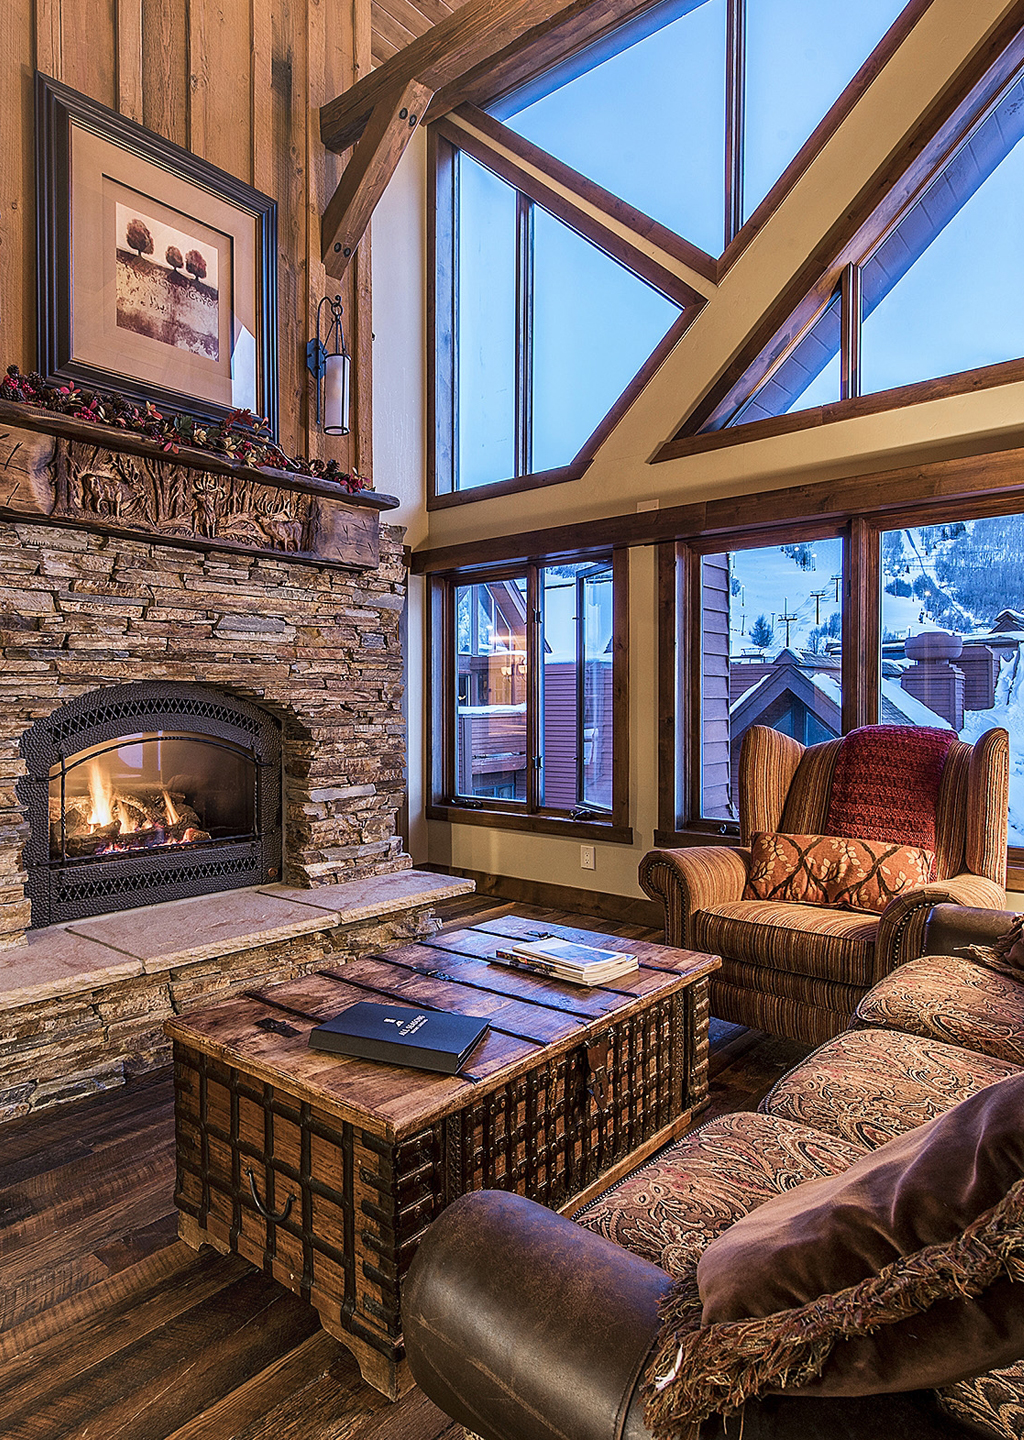 Interior of Penthouse Suite at the Lodge at the Mountain Village in Park City